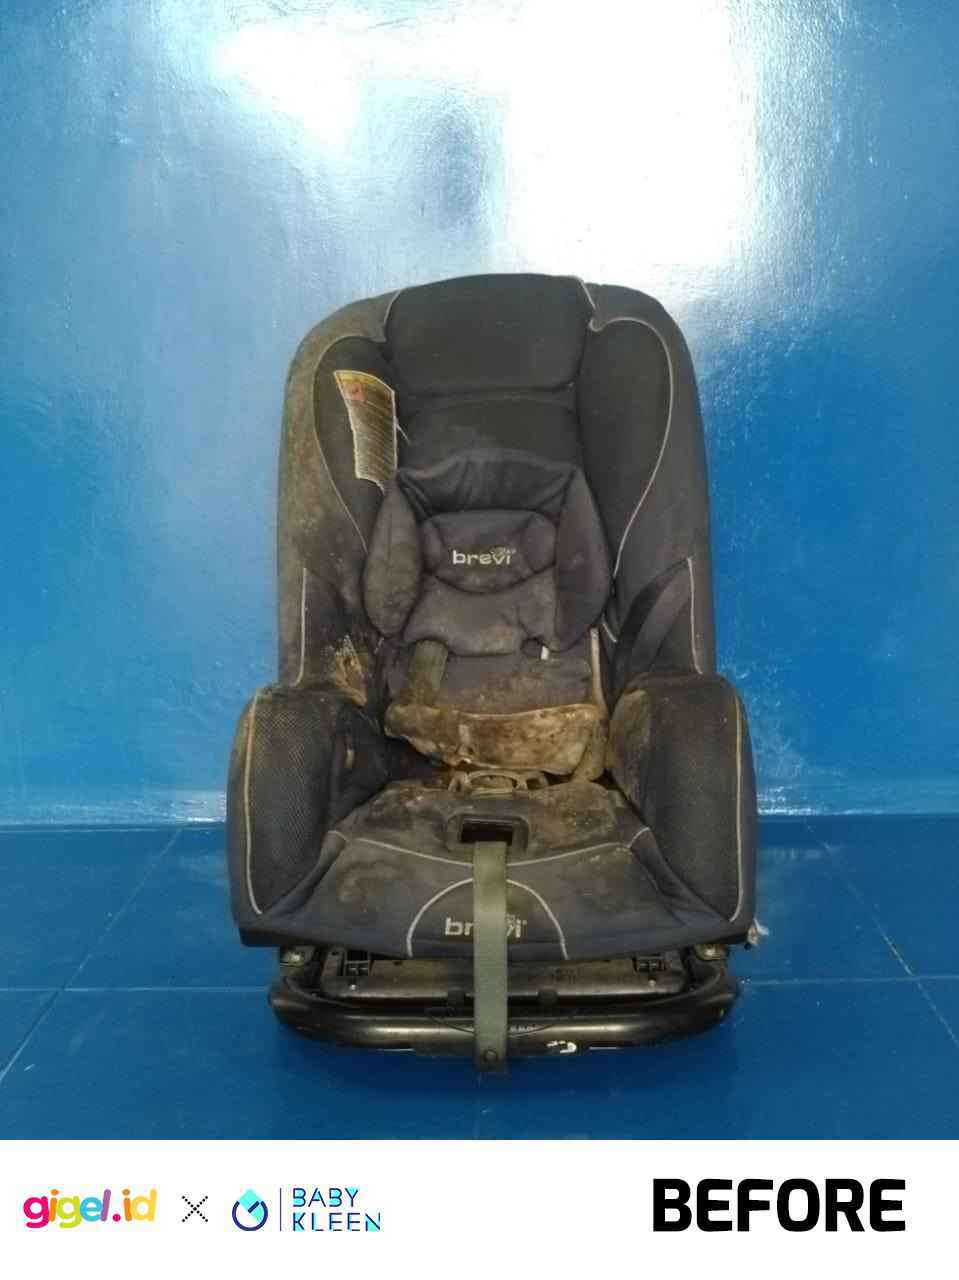 GIGEL.ID x Baby Kleen Laundry Car Seat - 2